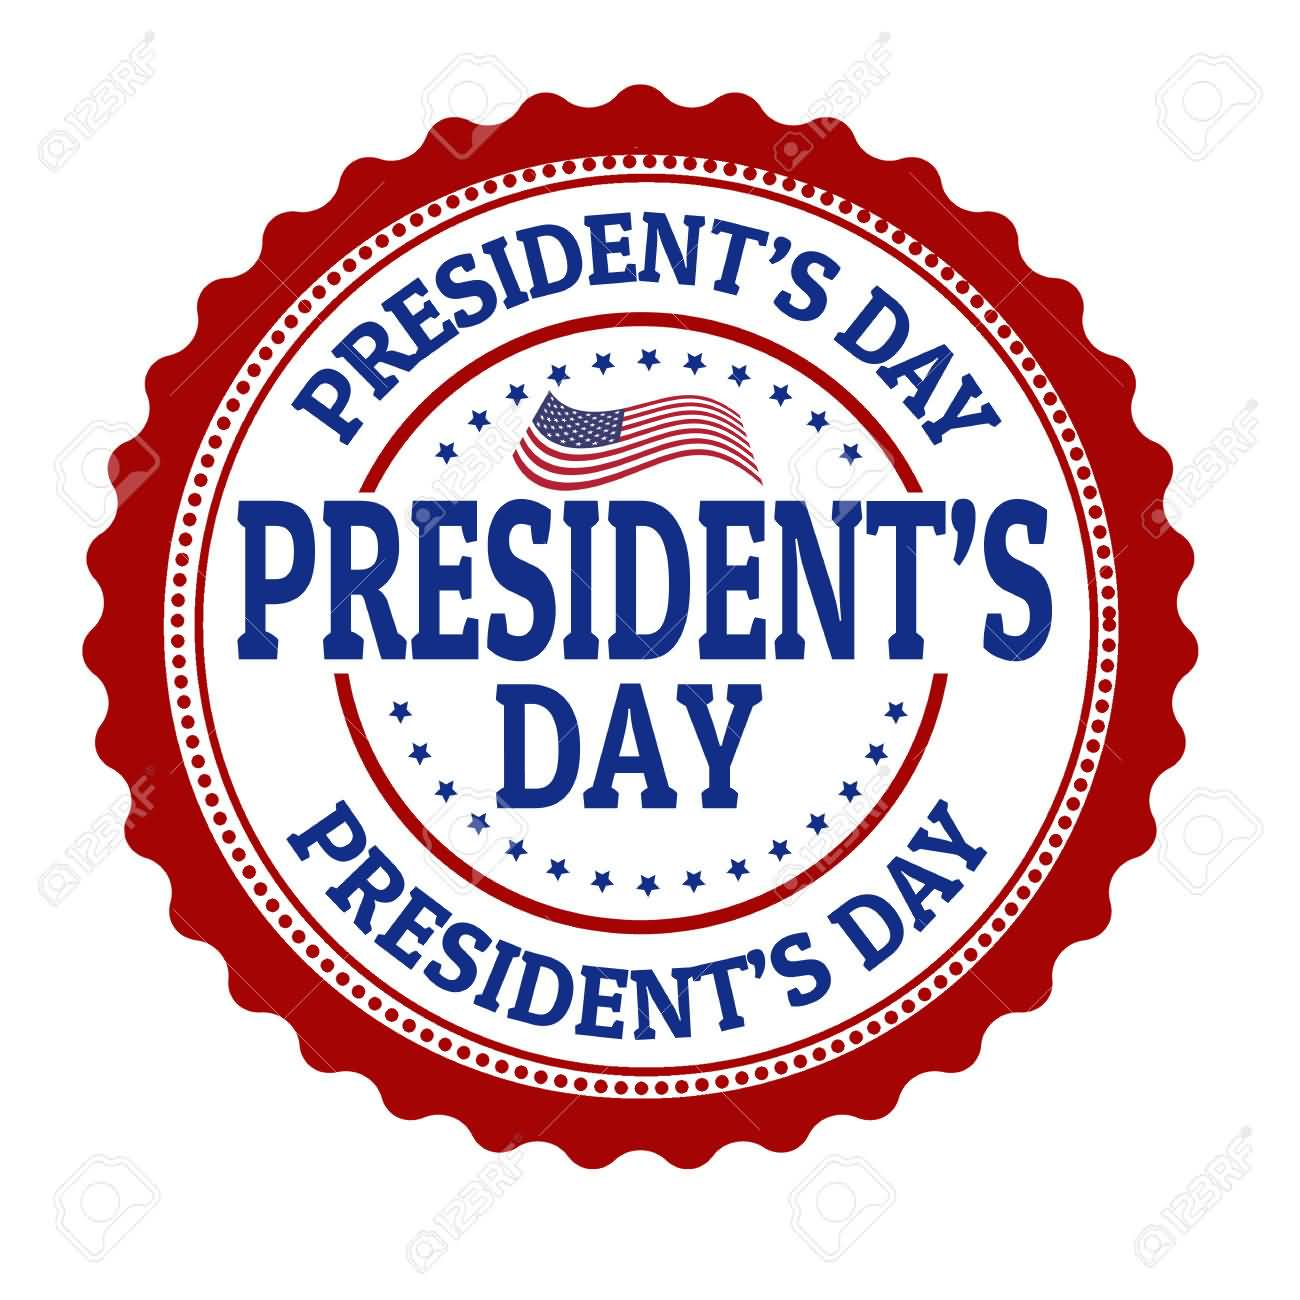 7-Presidents Day Wishes